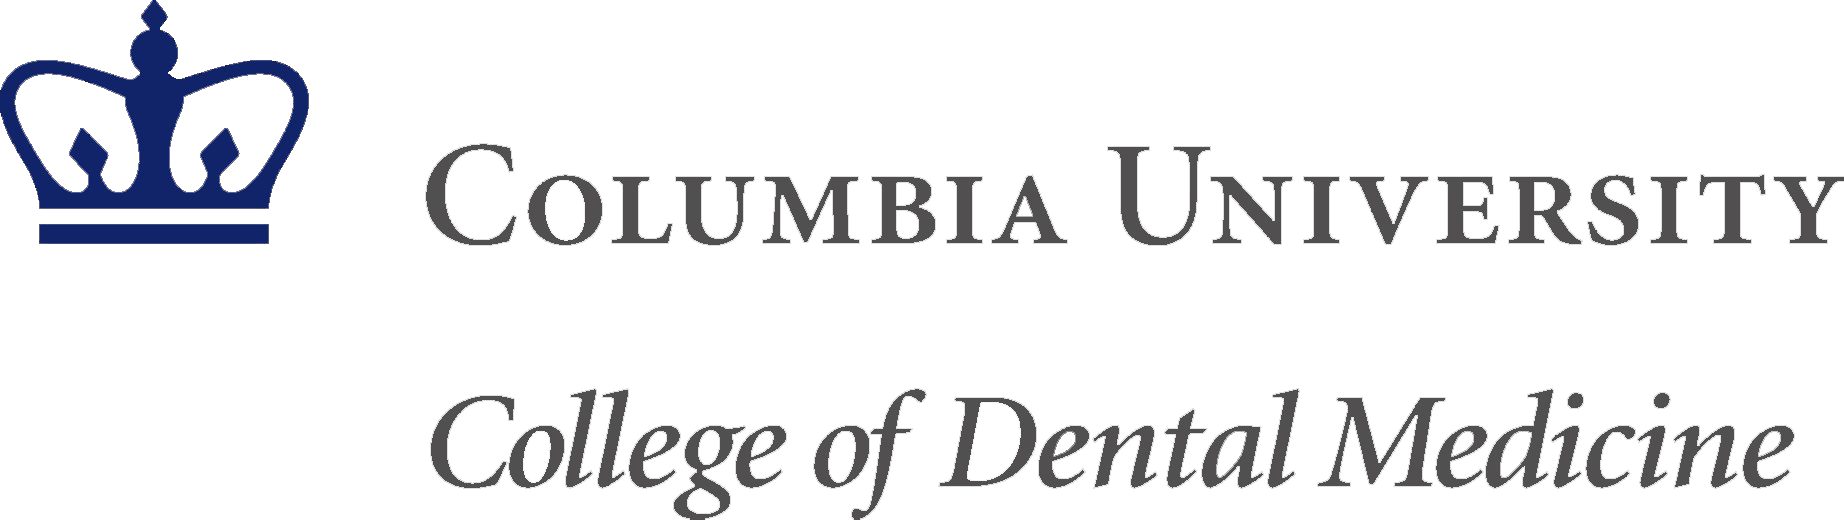 Columbia-Univerity-Medical-Center-.png